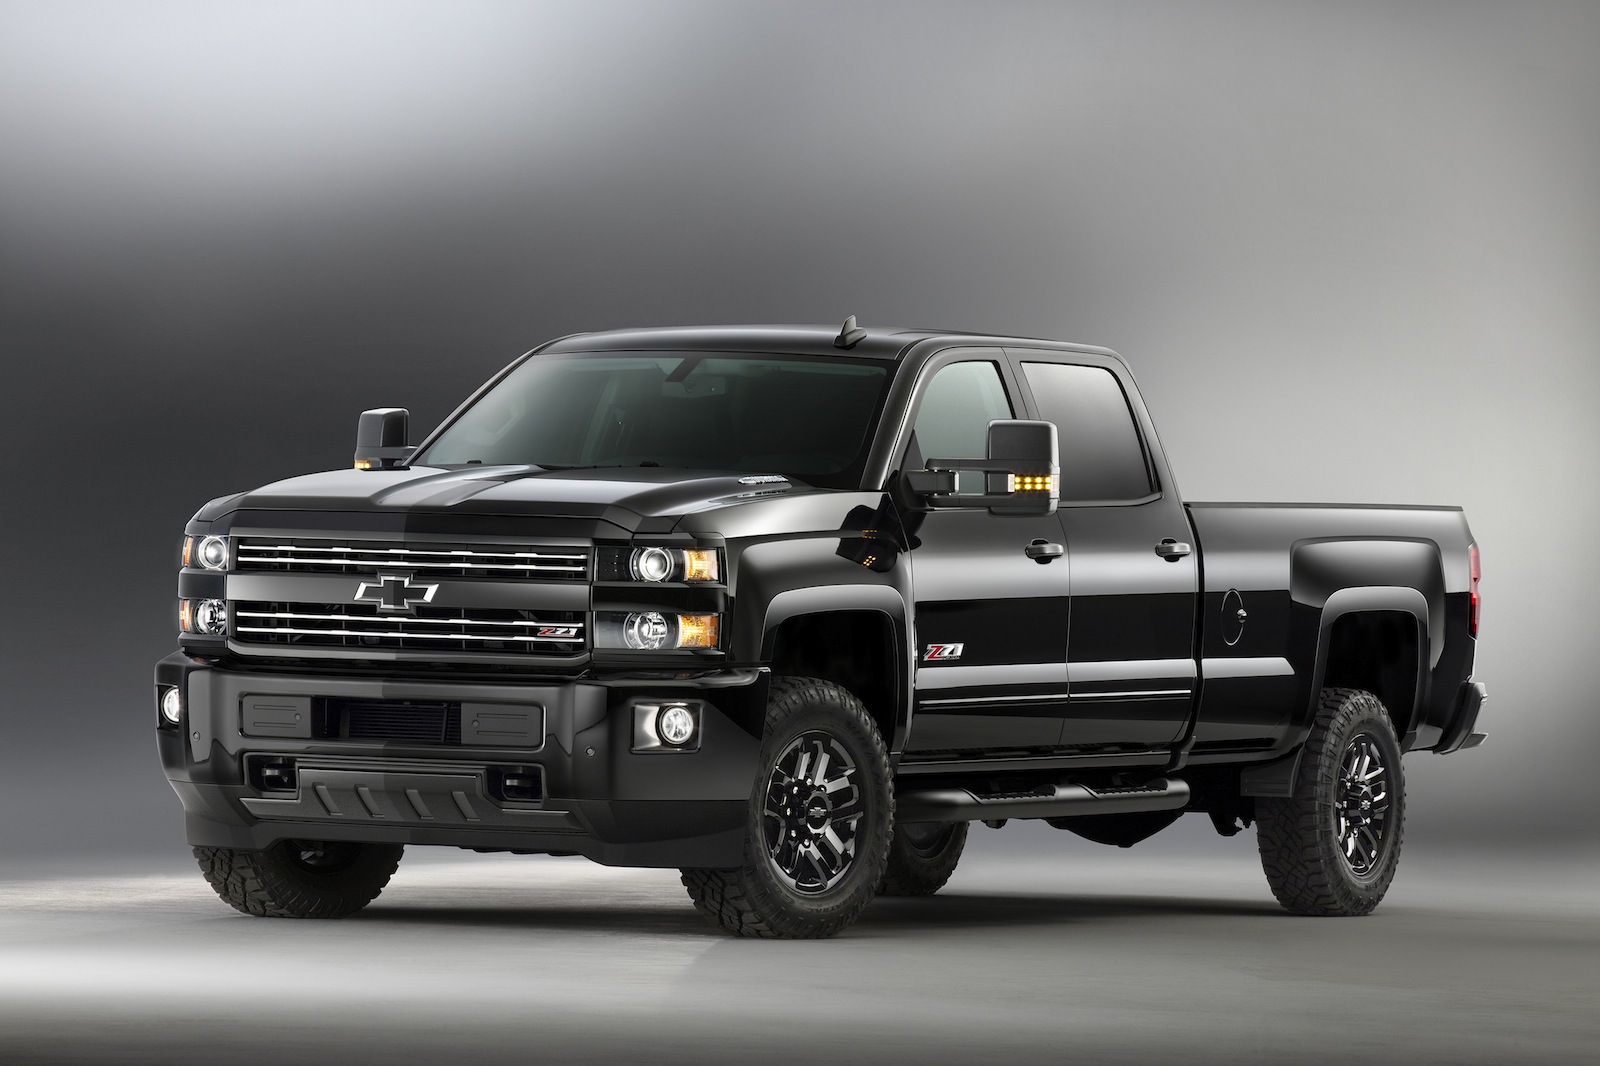 Truck black chevy truck : 2016 Chevy Trucks go Dark with Midnight Editions » AutoGuide.com News